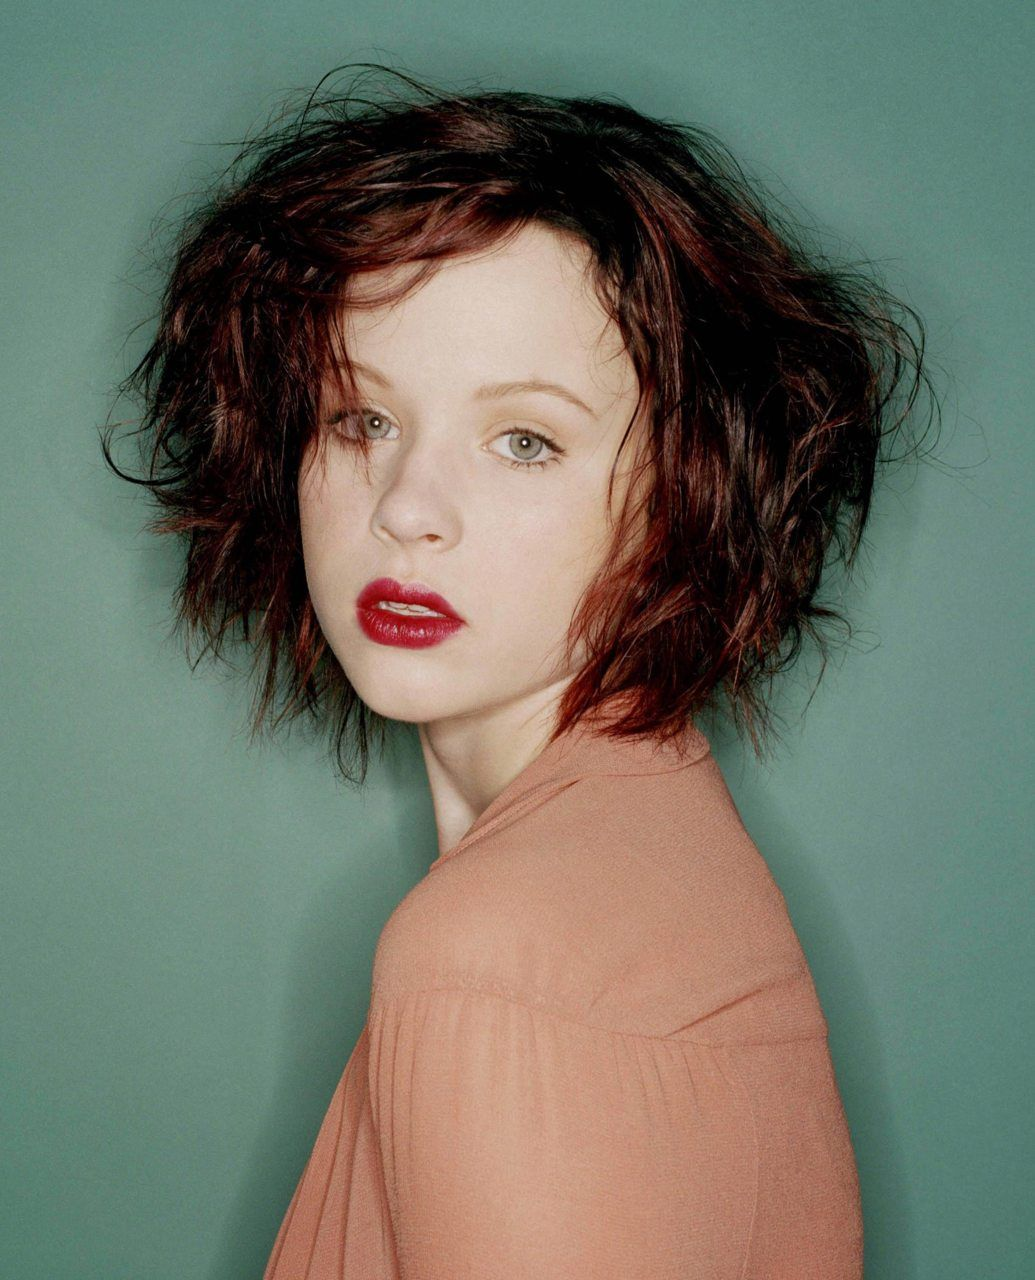 Red hair red lips pale white skinthora is irresistible female